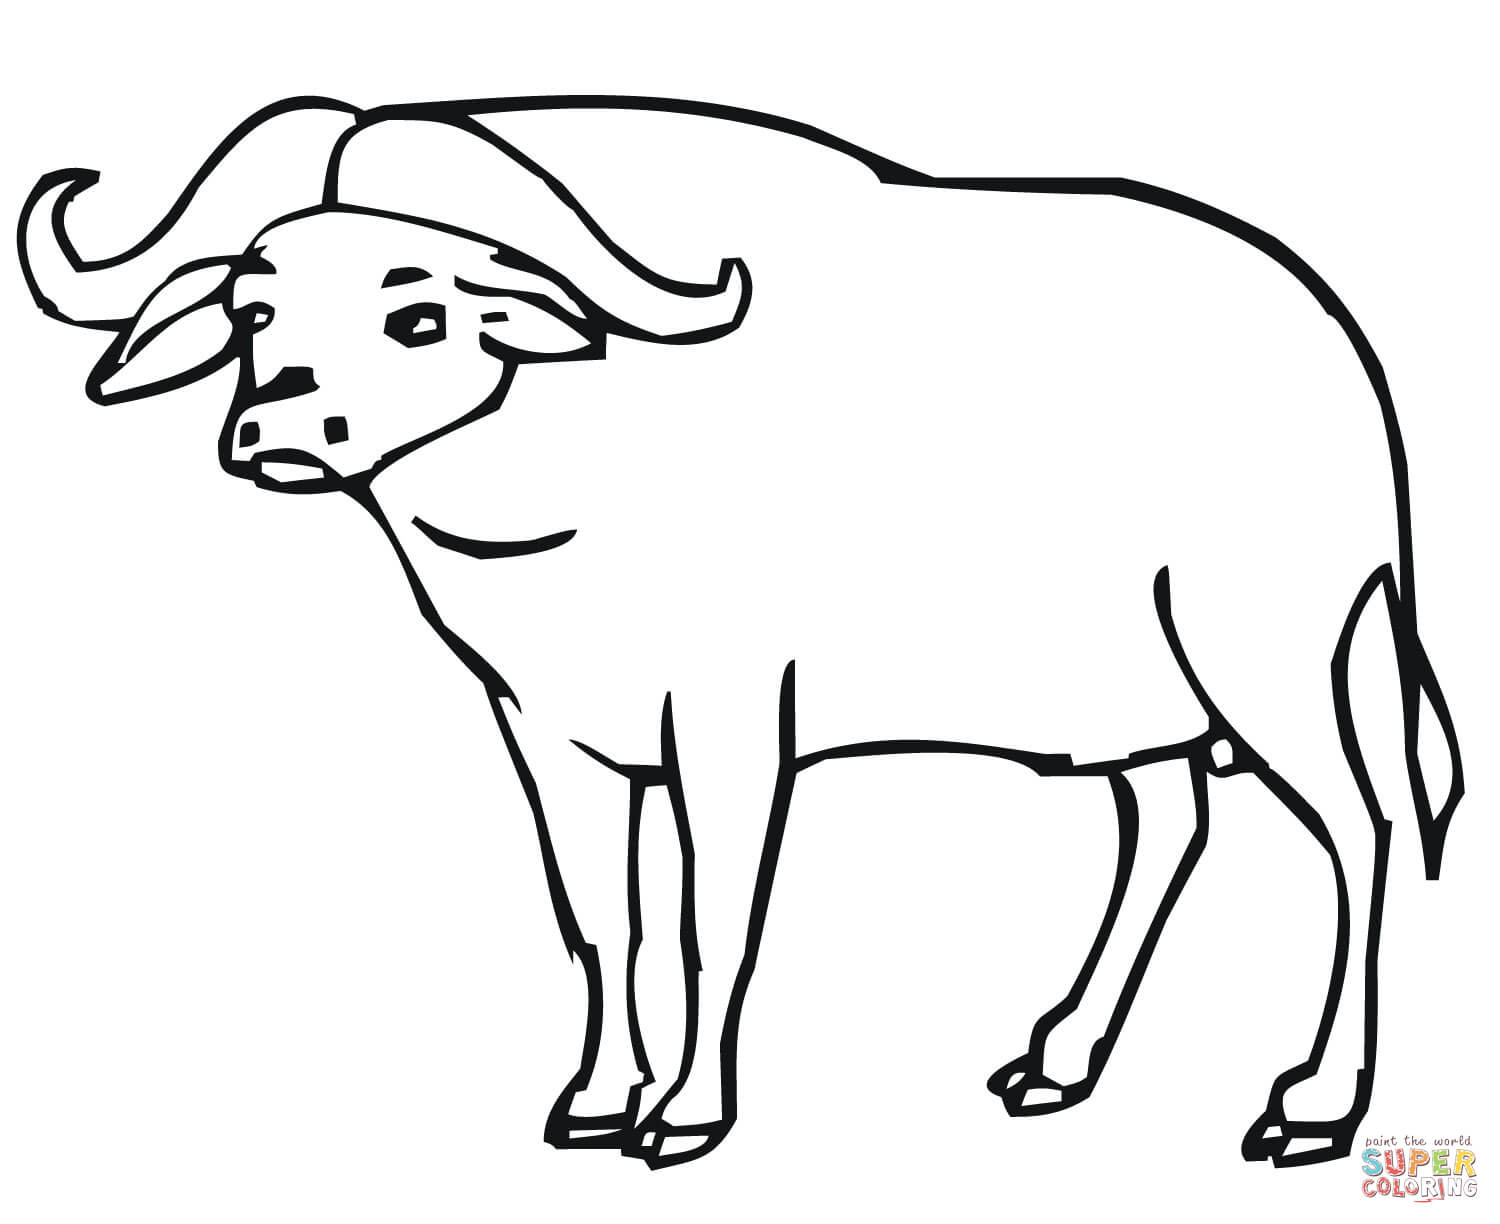 buffalo outline drawing at getdrawings free